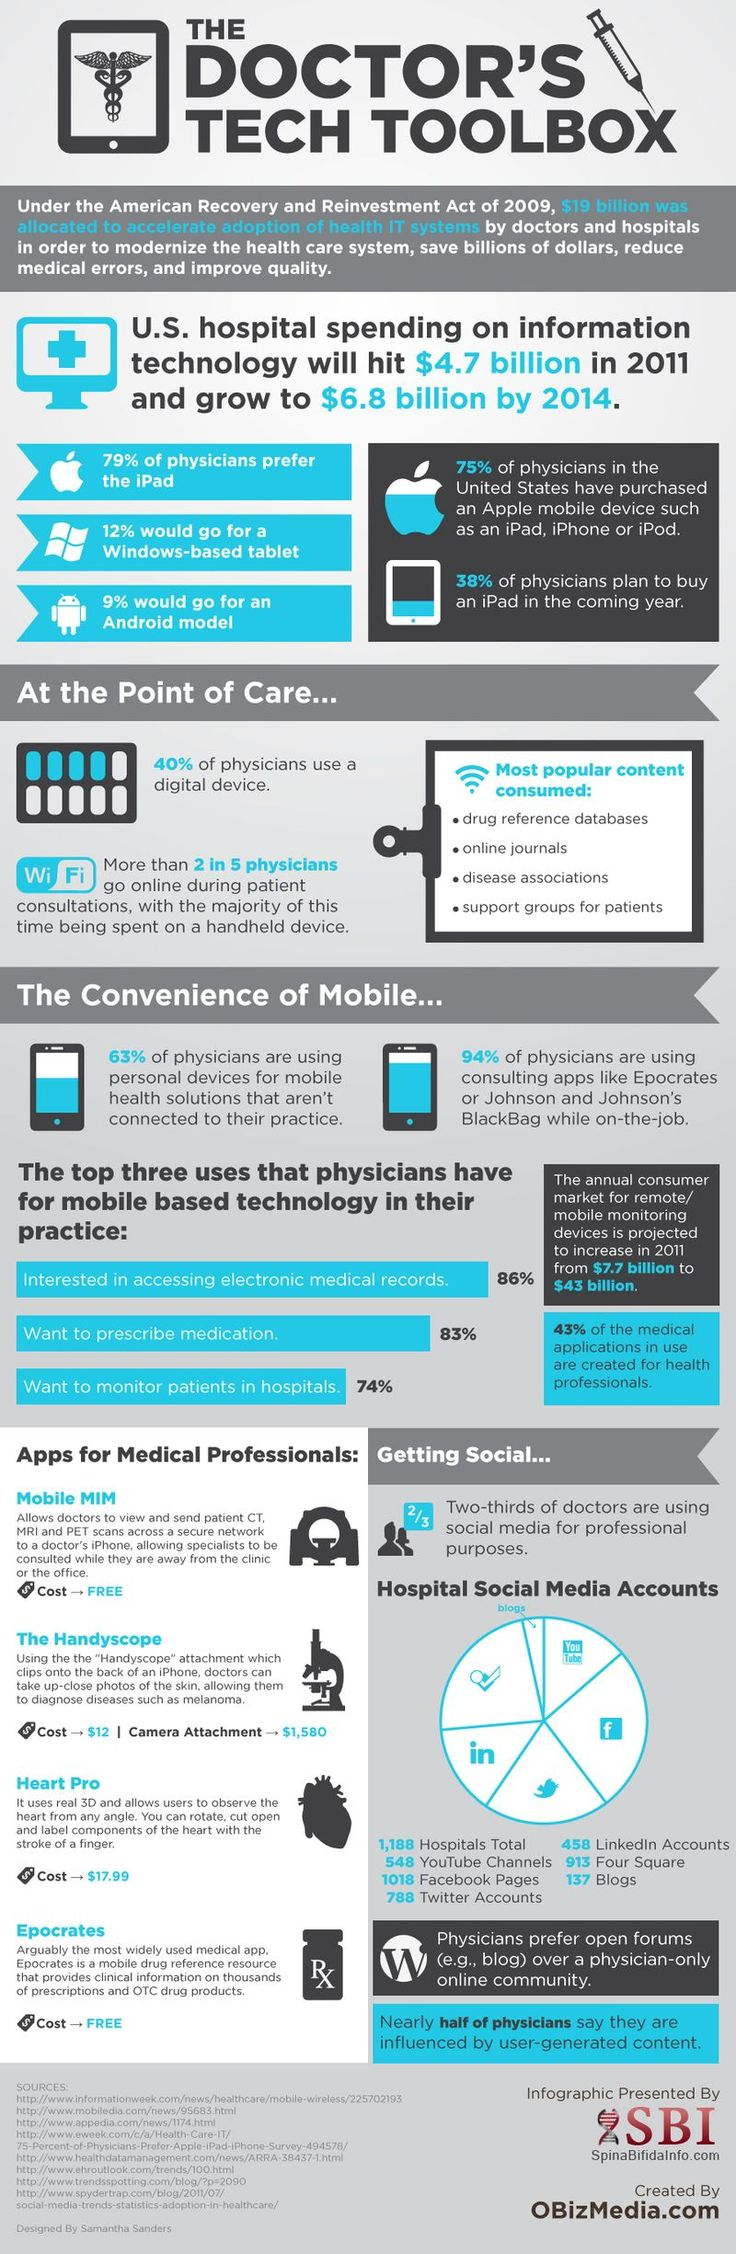 How Are Doctors And Hospitals Using Social, Mobile And Digital With The Healthcare System? #hcsm #infographic